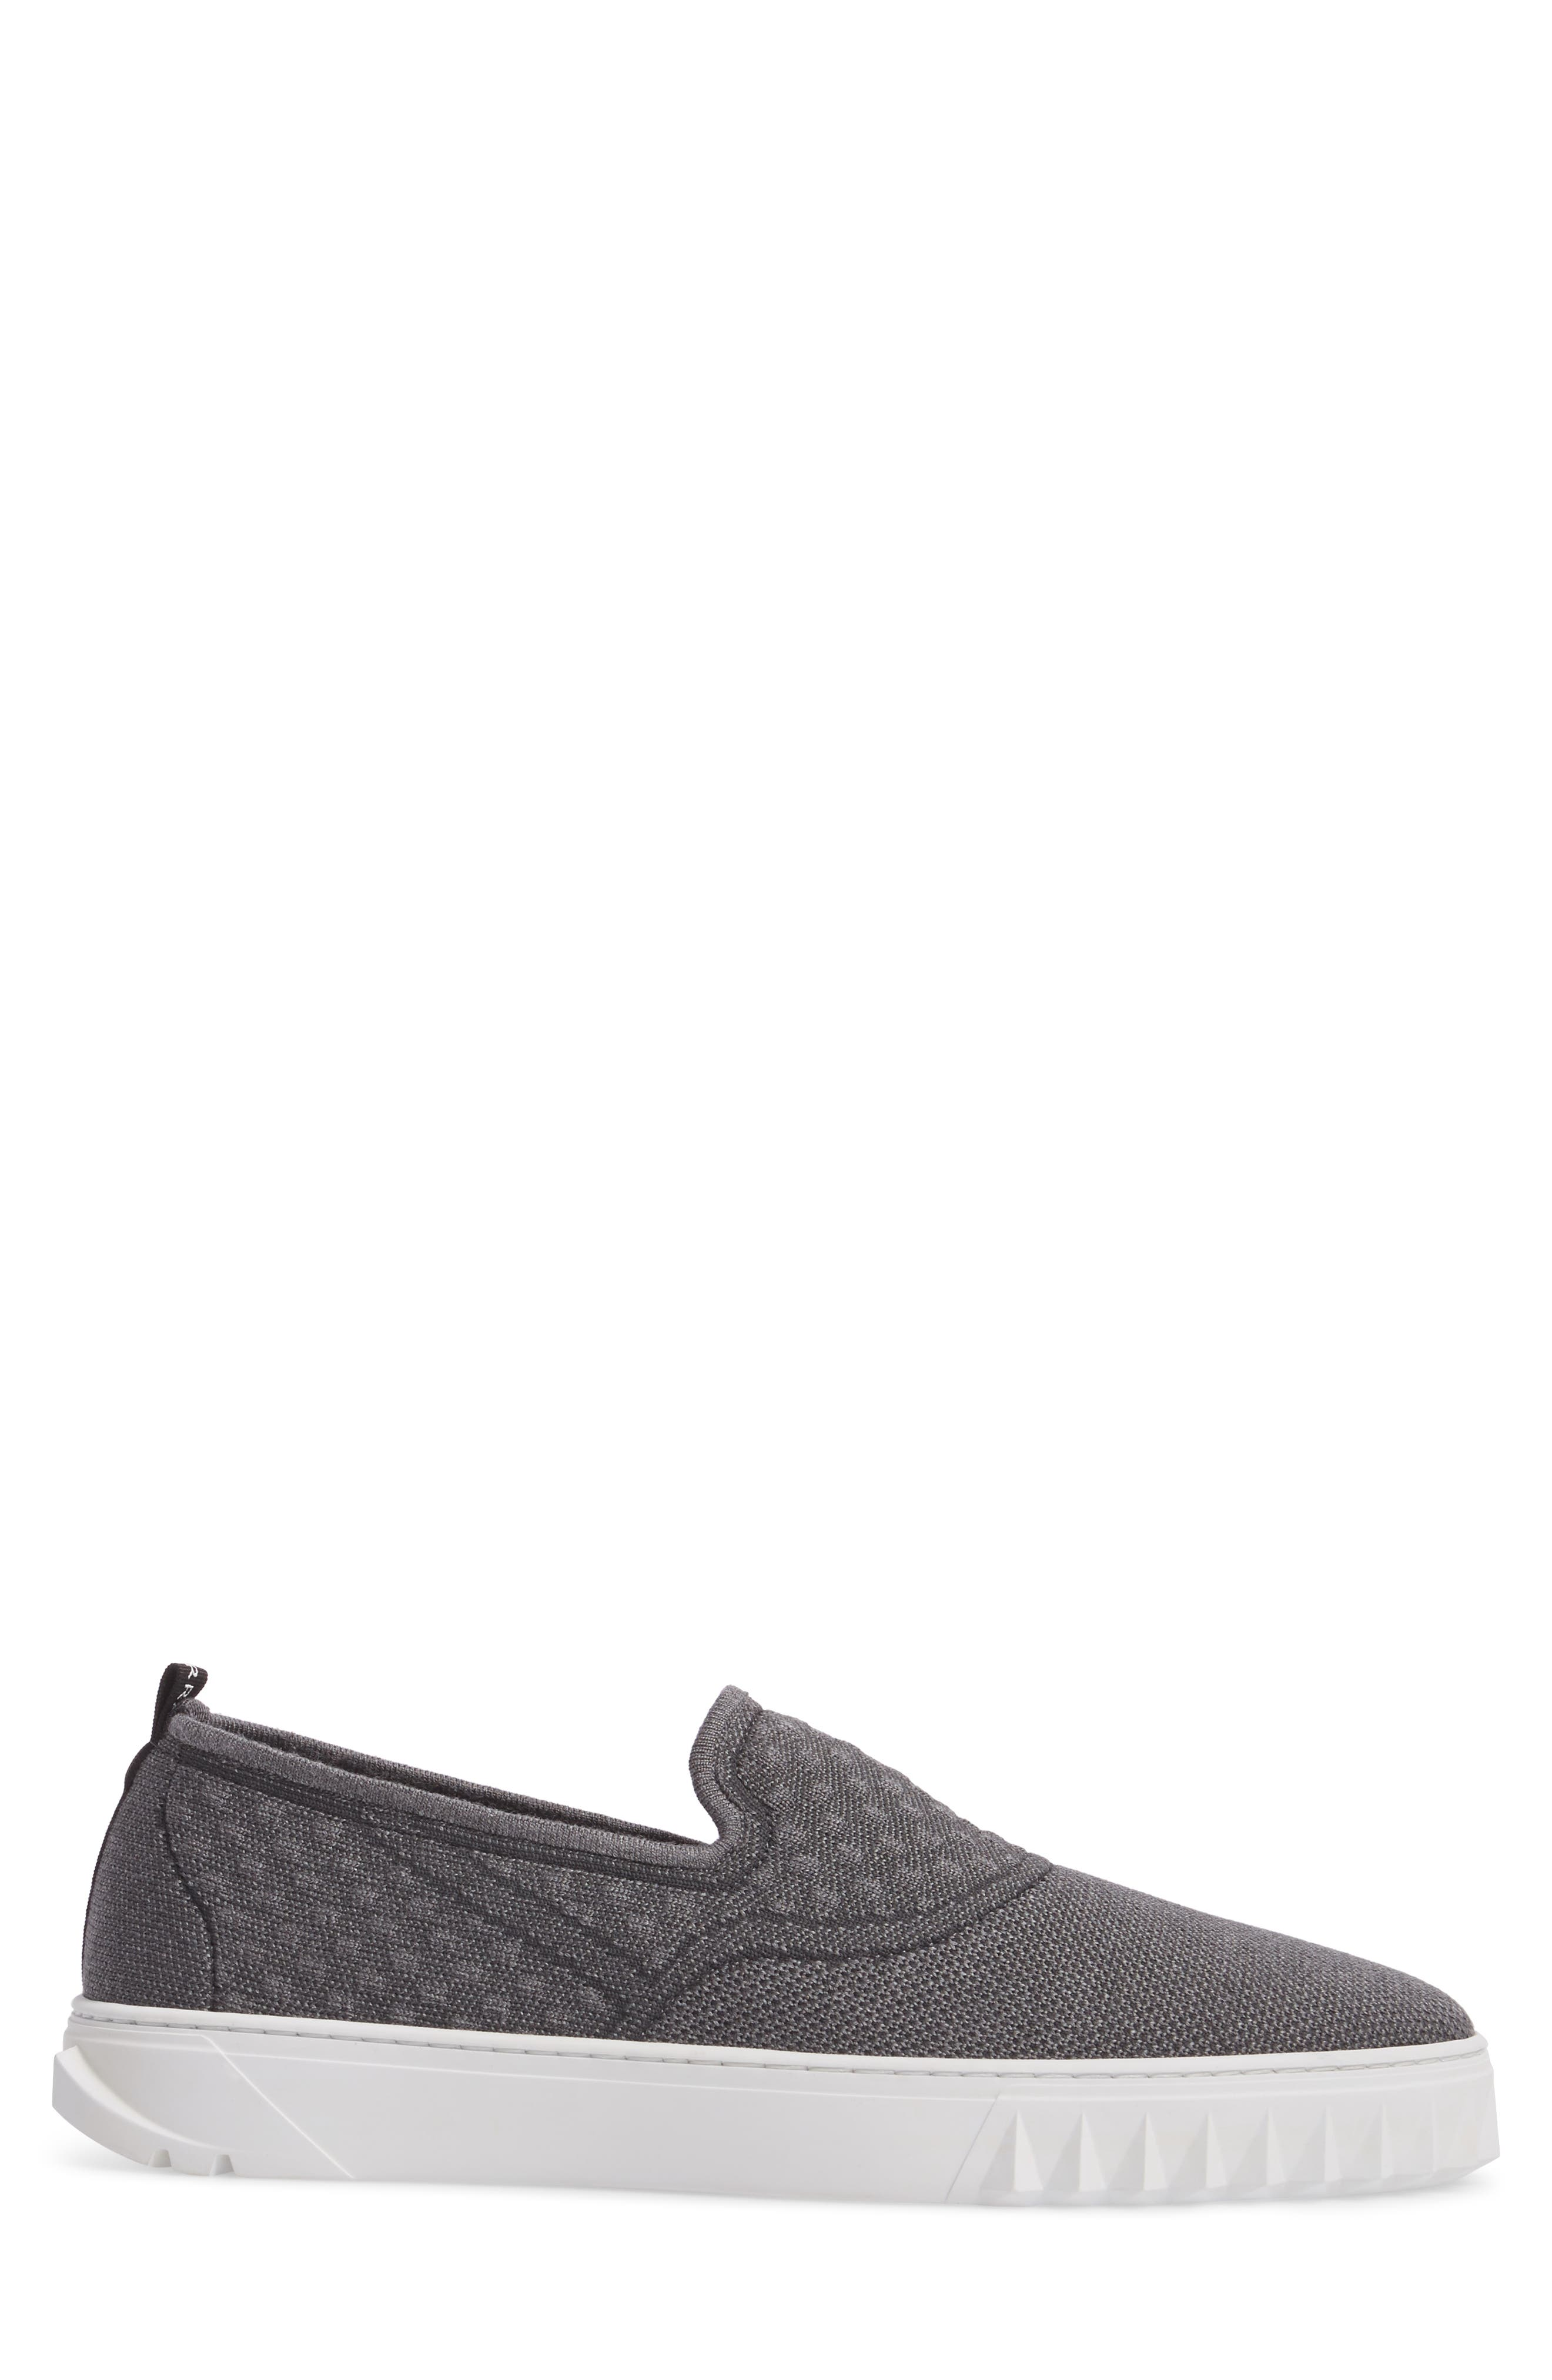 Clay Slip-On Sneaker,                             Alternate thumbnail 3, color,                             Charcoal